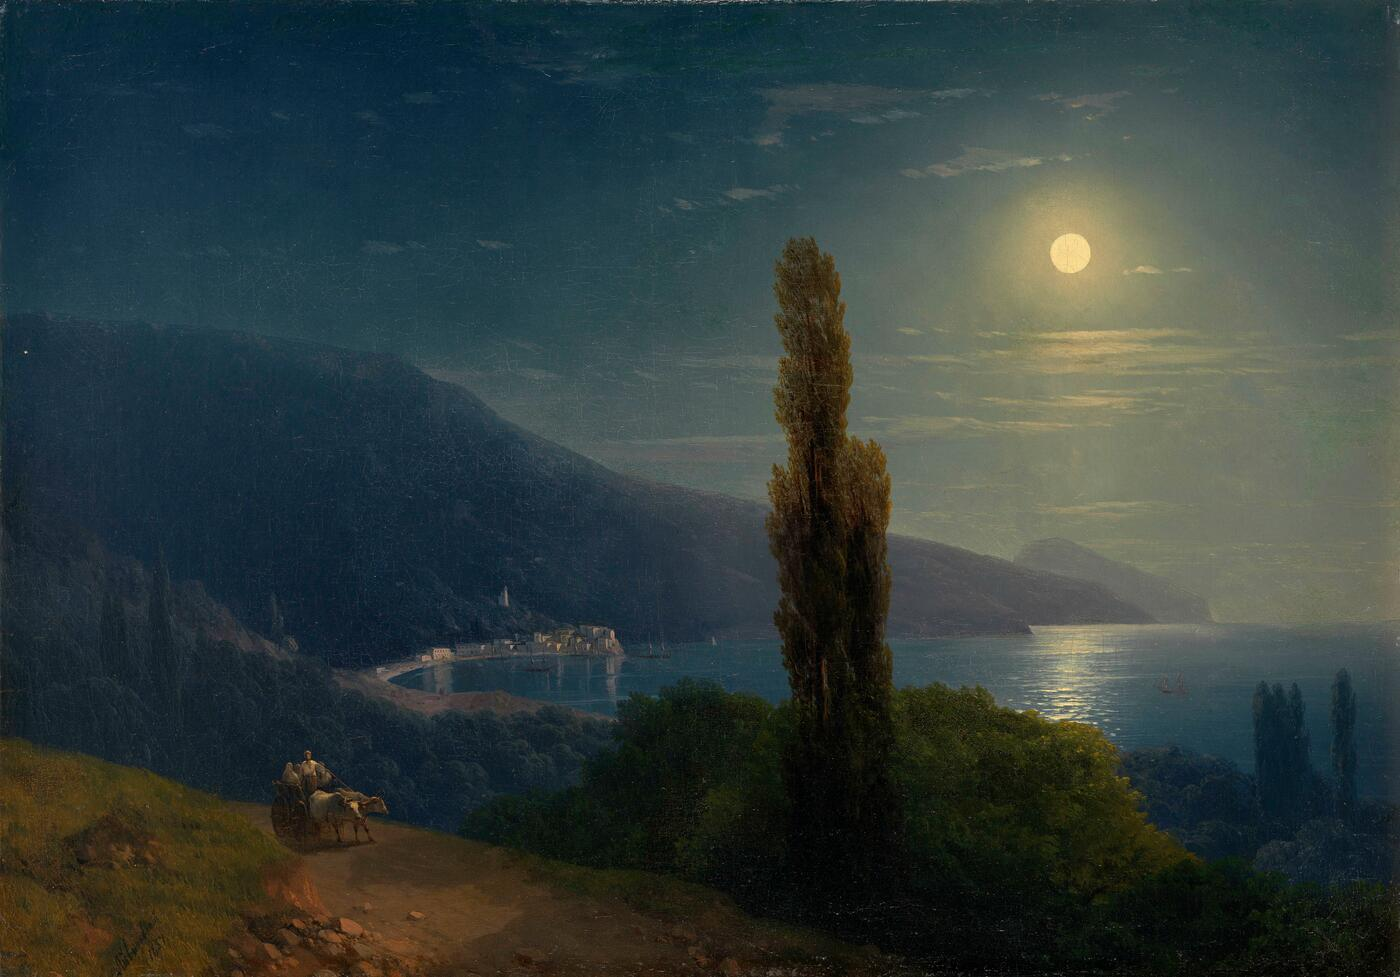 Moonlit Night, Crimea